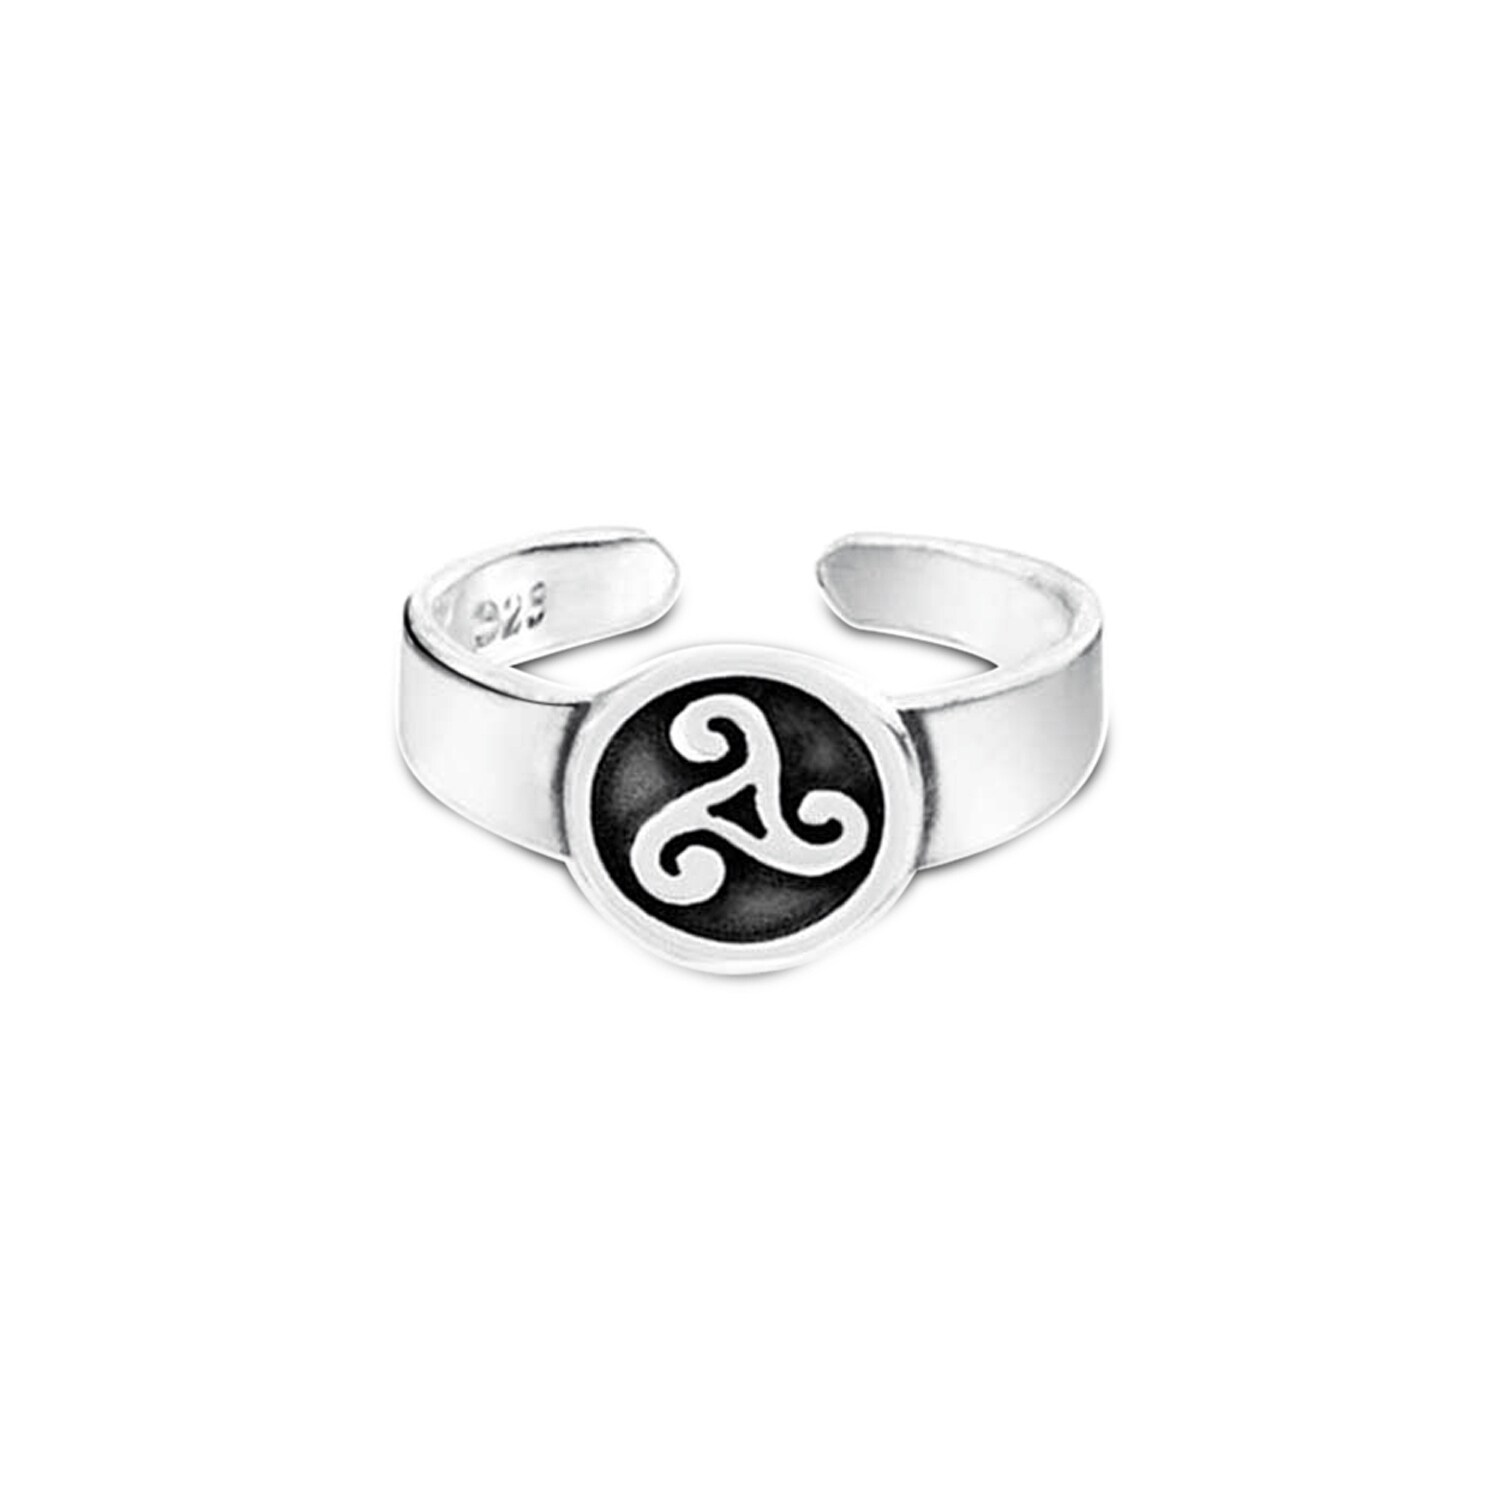 Sterling Silver Trinity Knot Slender Band Ring Celtic Triquetra Knotwork Jewelry